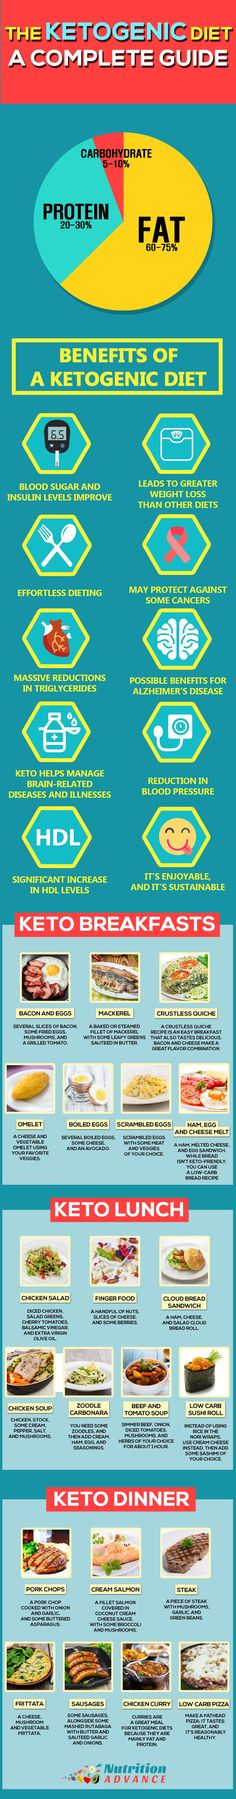 The Ketogenic Diet: An Ultimate Guide. This infographic shows some of the benefits of a Ketogenic Diet alongside a meal plan for 7 days featuring breakfasts, lunches, and dinners. You can find all of this info and a lot more on keto and low carb living in the main article at nutritionadvance.... #ketogenic_diet_recipes